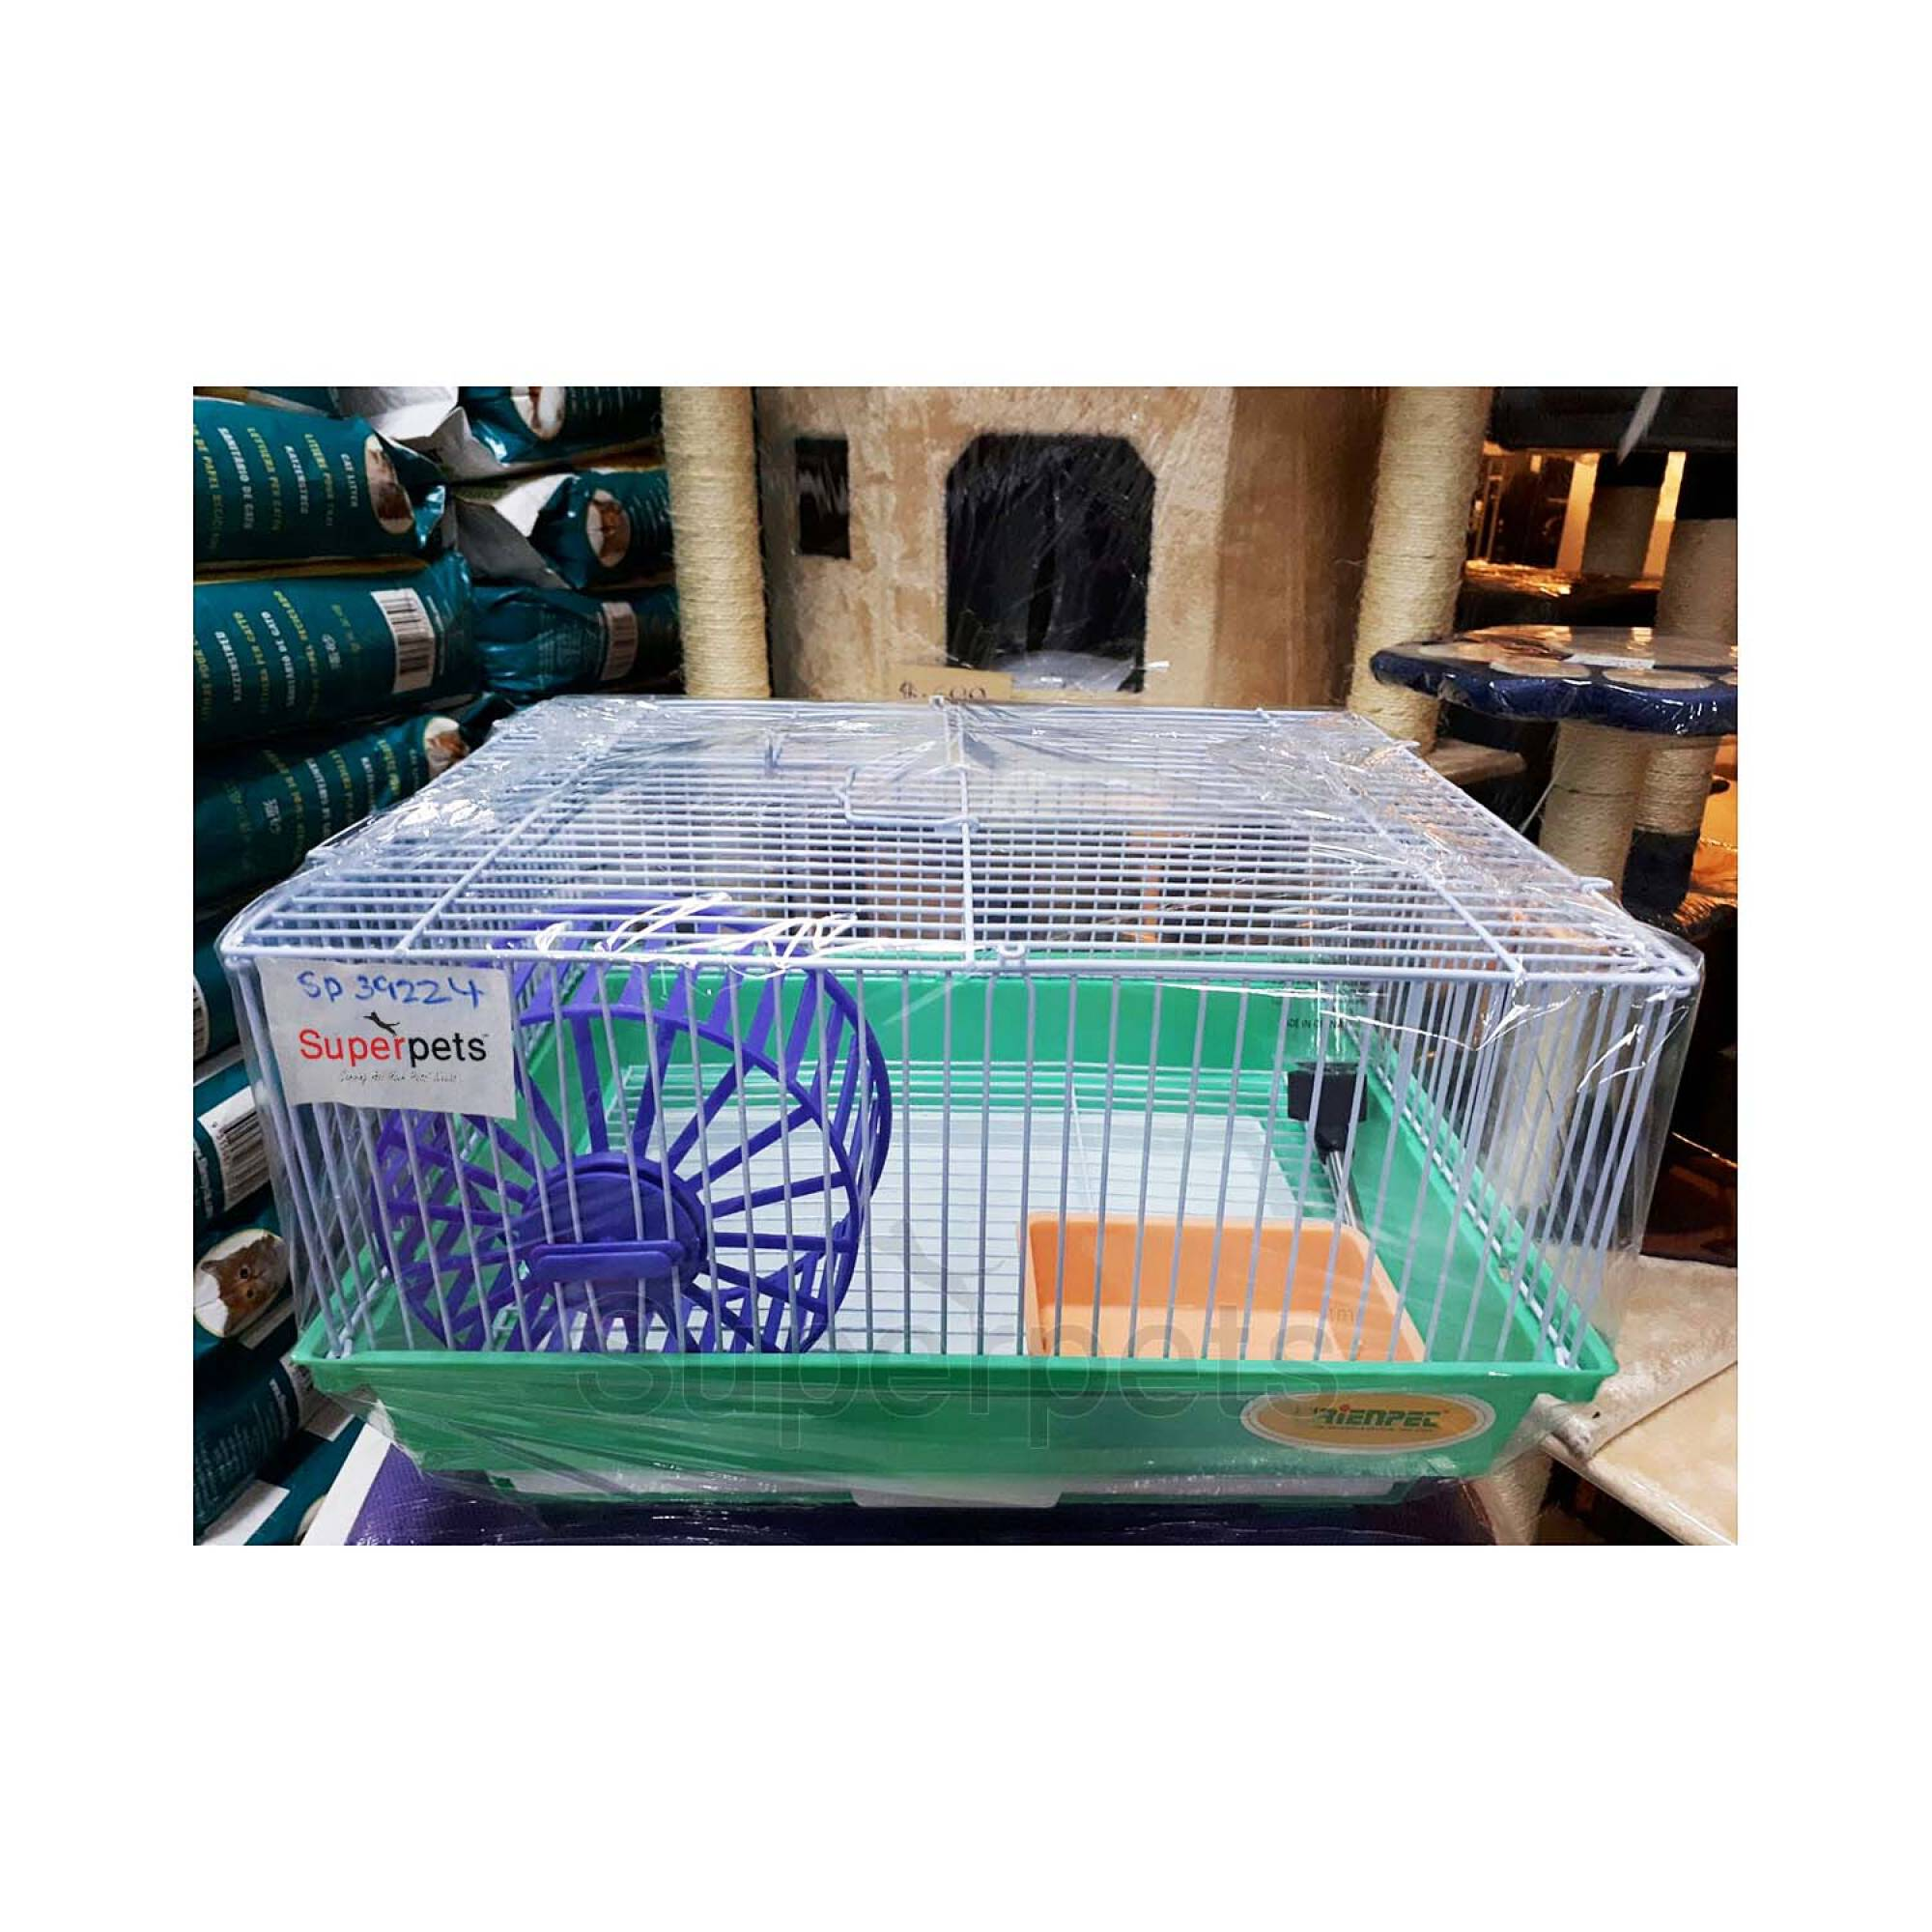 OPSP39224 Hamster Cage - Blue / Green / Yellow - Green